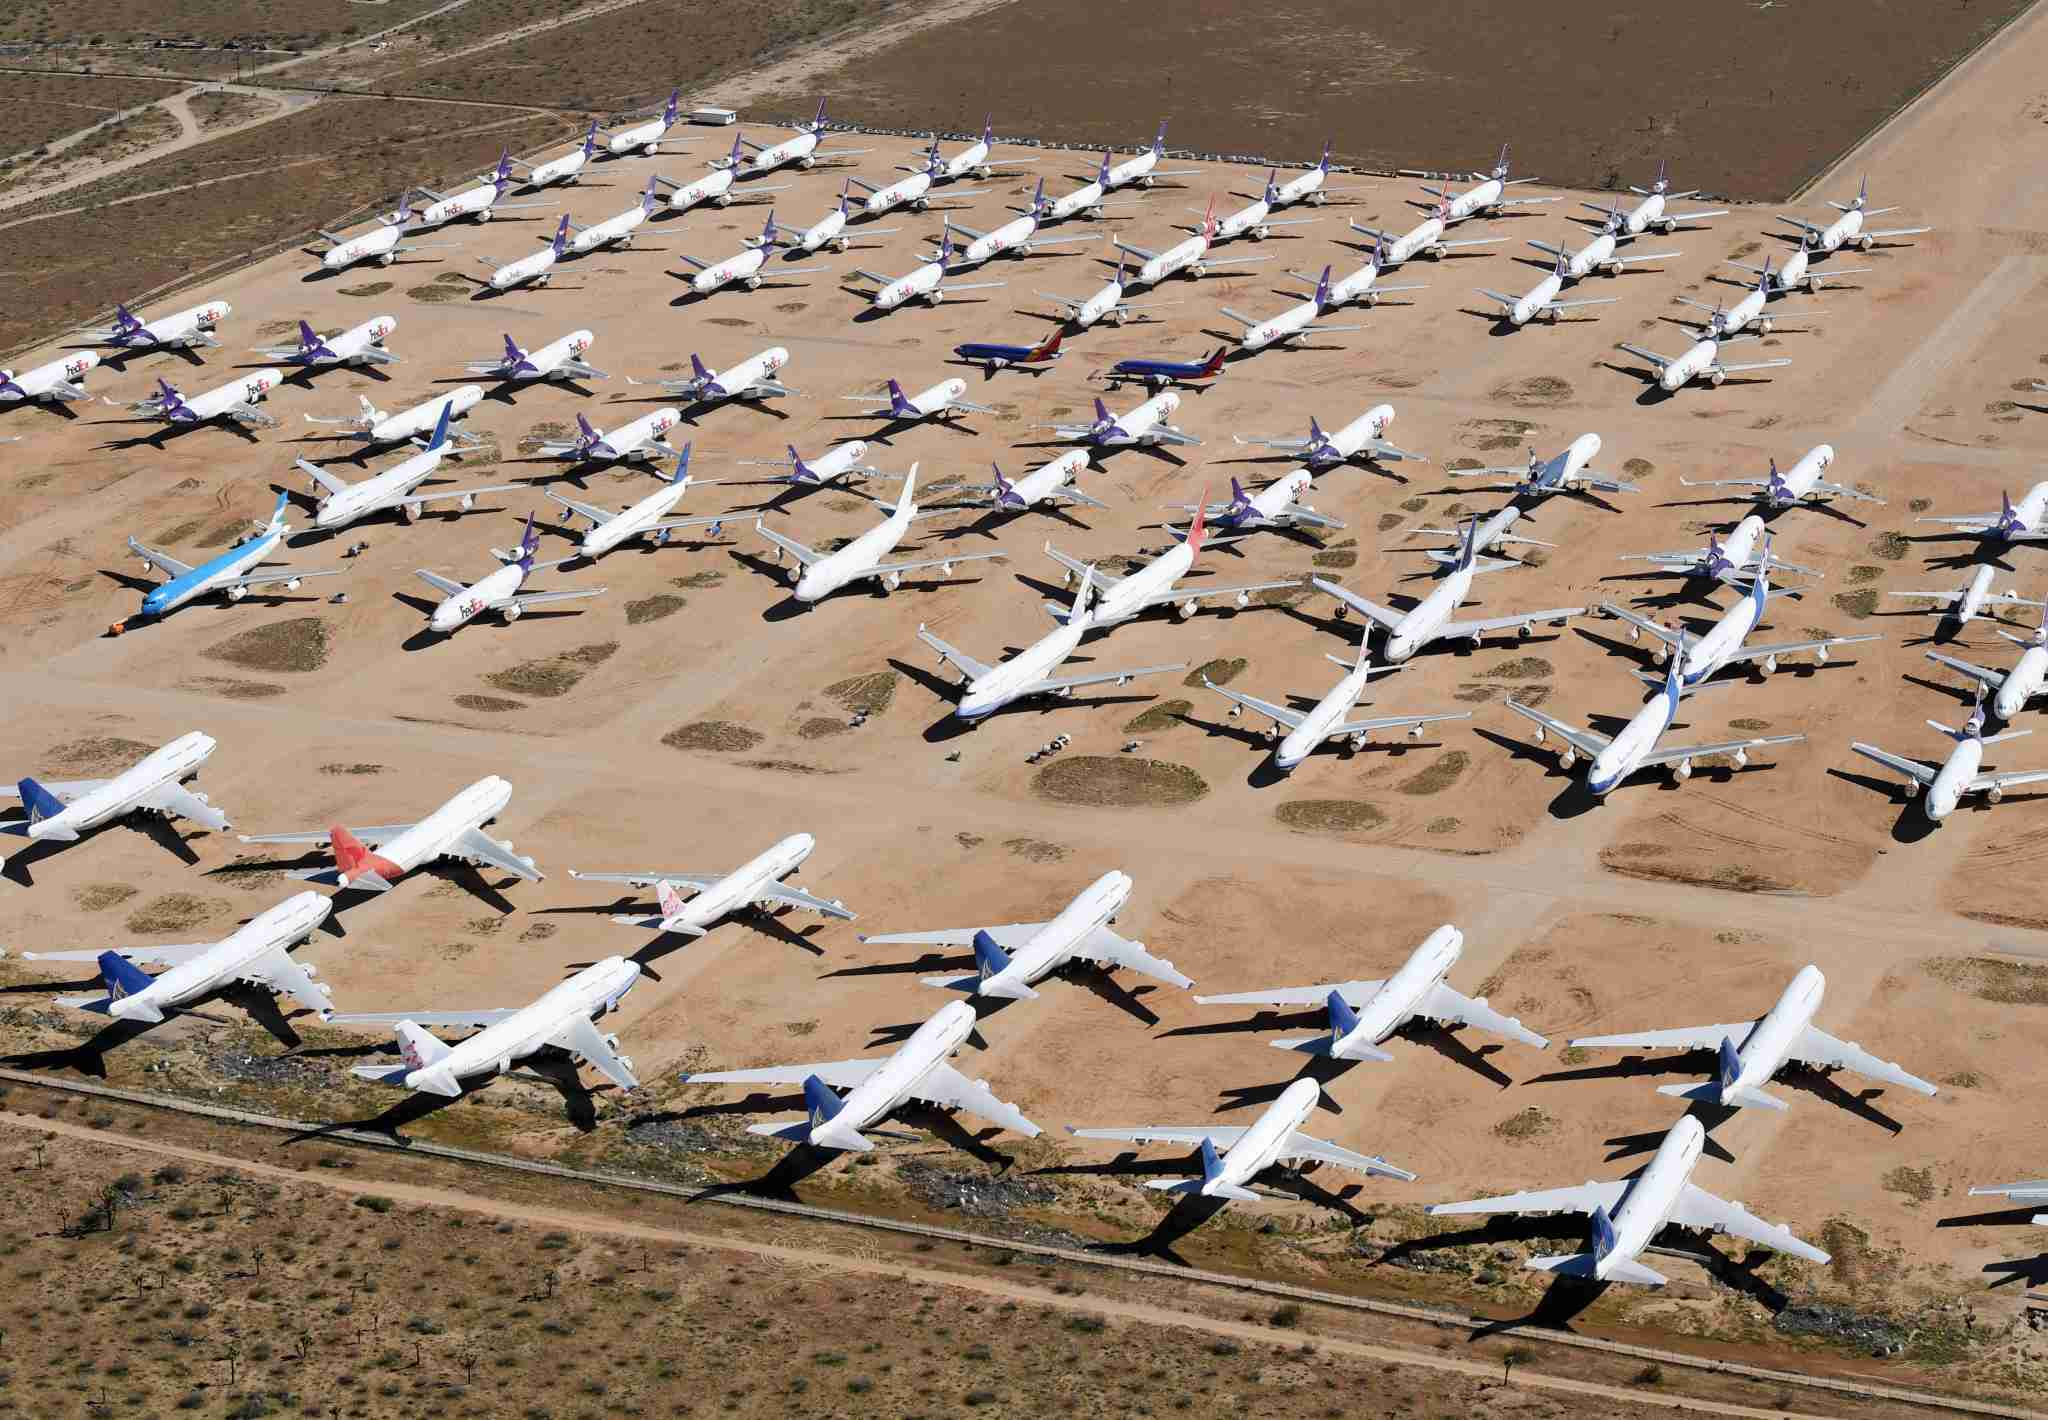 This photo taken on March 28, 2019 shows planes from various airlines in storage at a